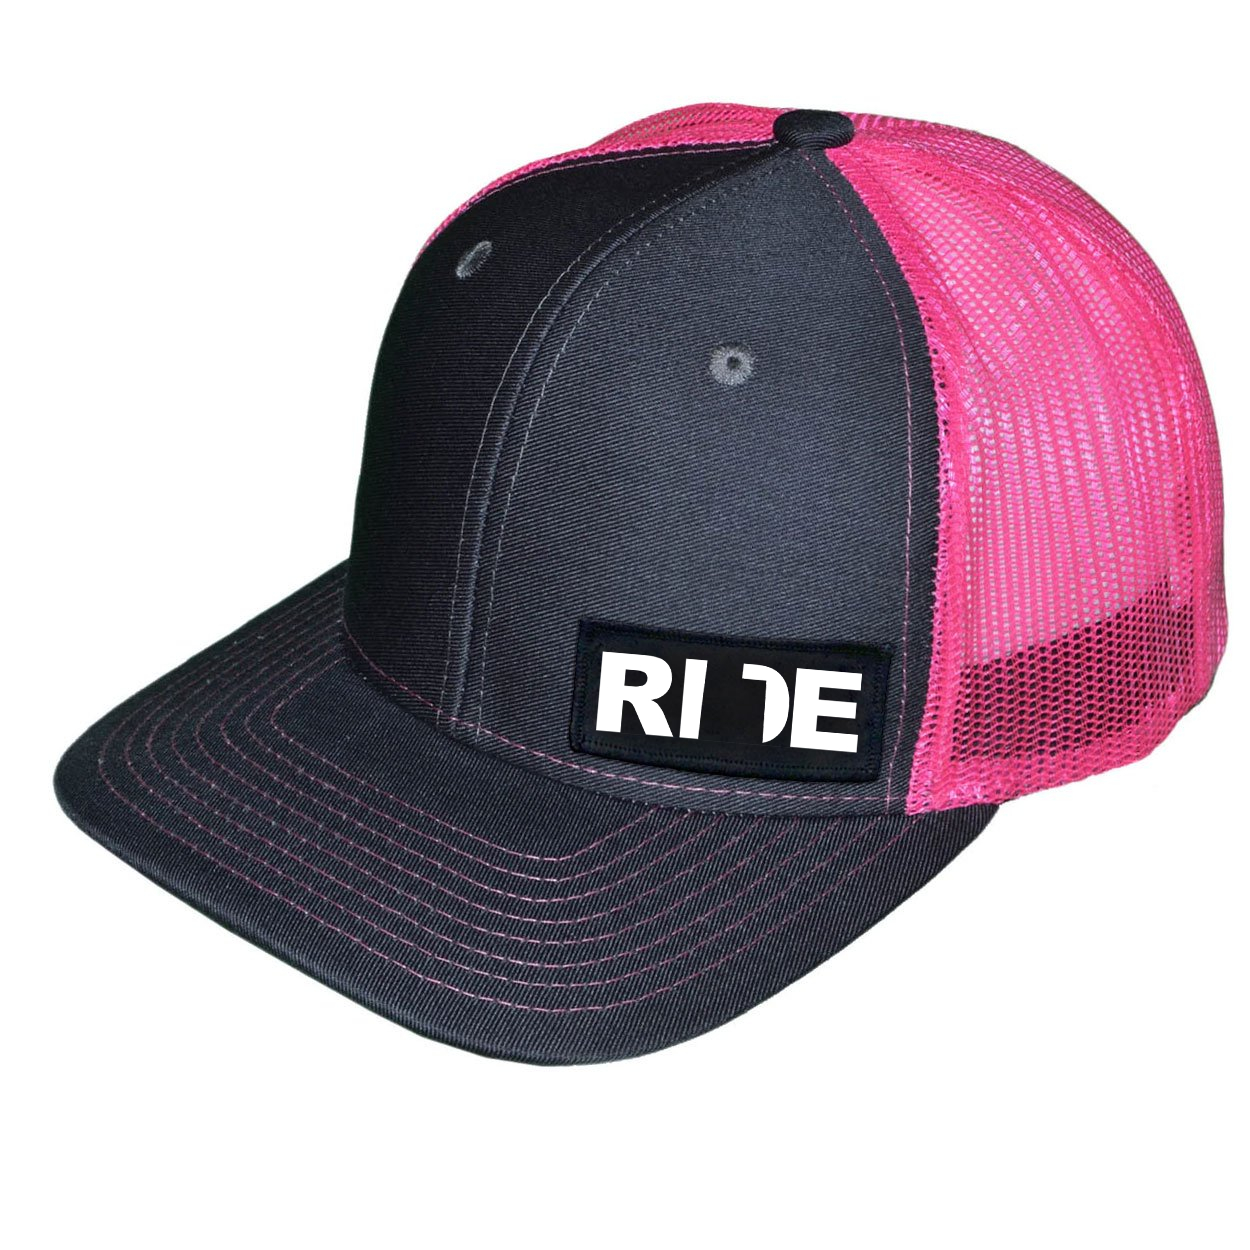 Ride Utah Night Out Woven Patch Snapback Trucker Hat Dark Gray/Neon Pink (White Logo)